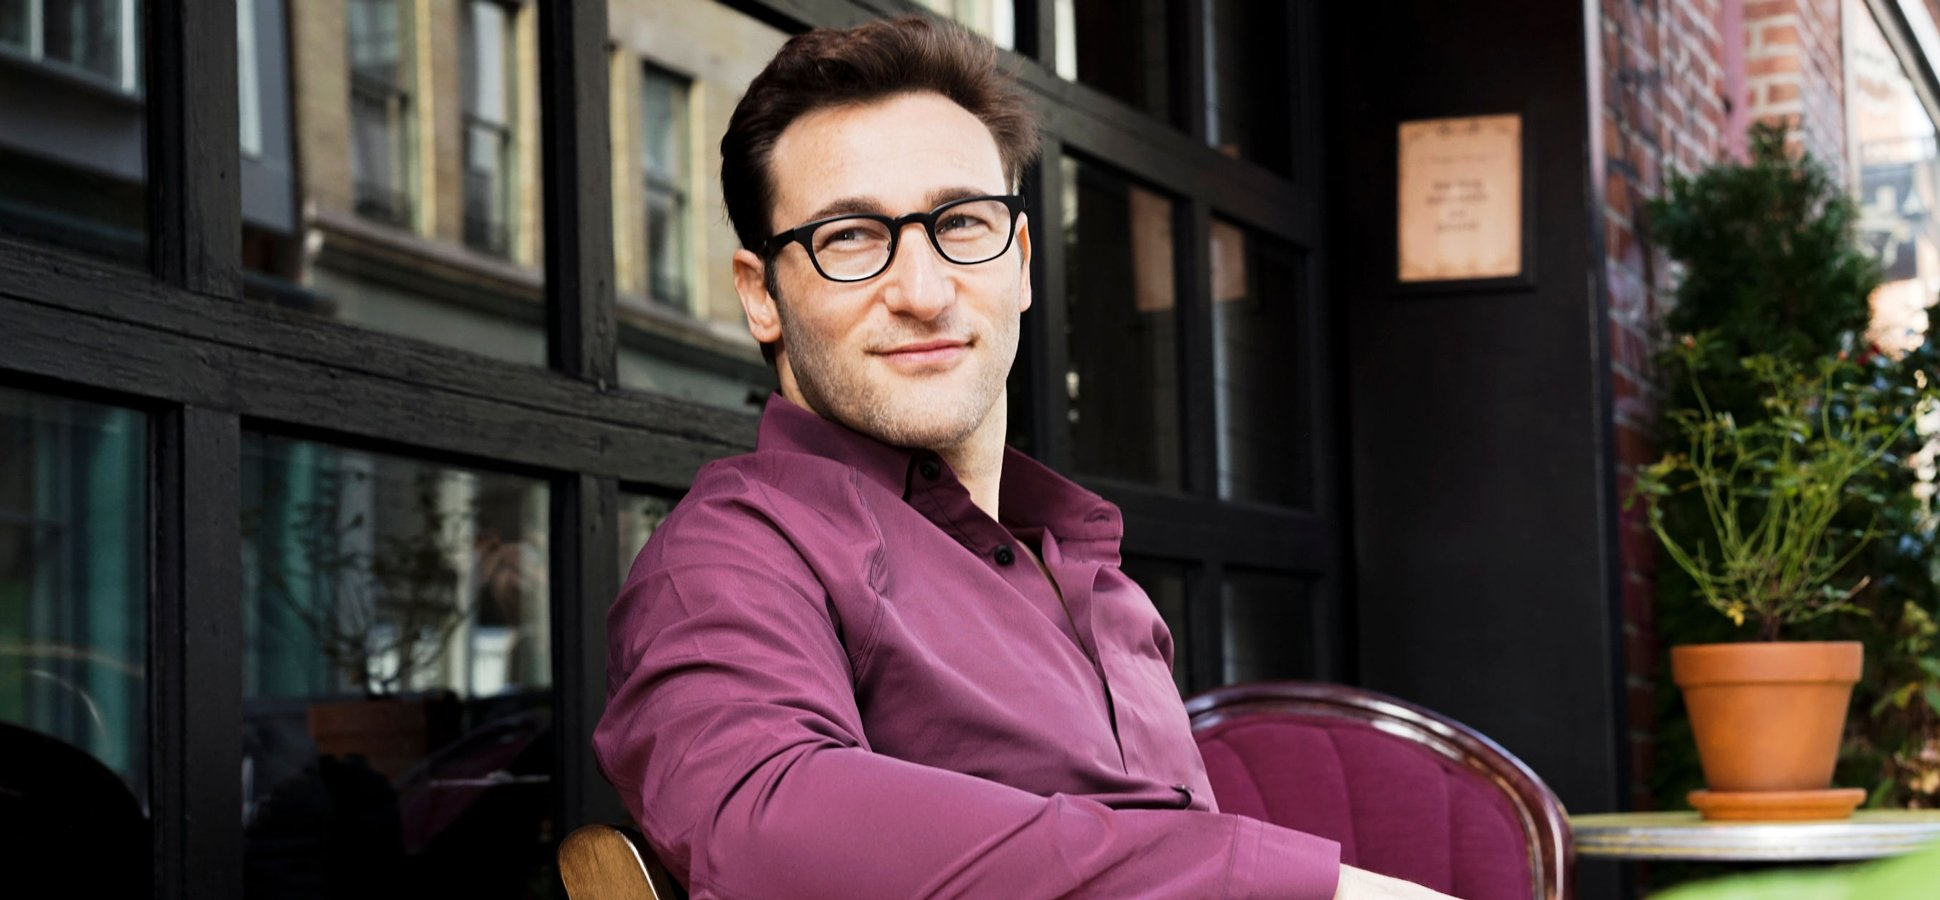 Simon Sinek on Why Focusing on Winning Is the Quickest Way to Lose